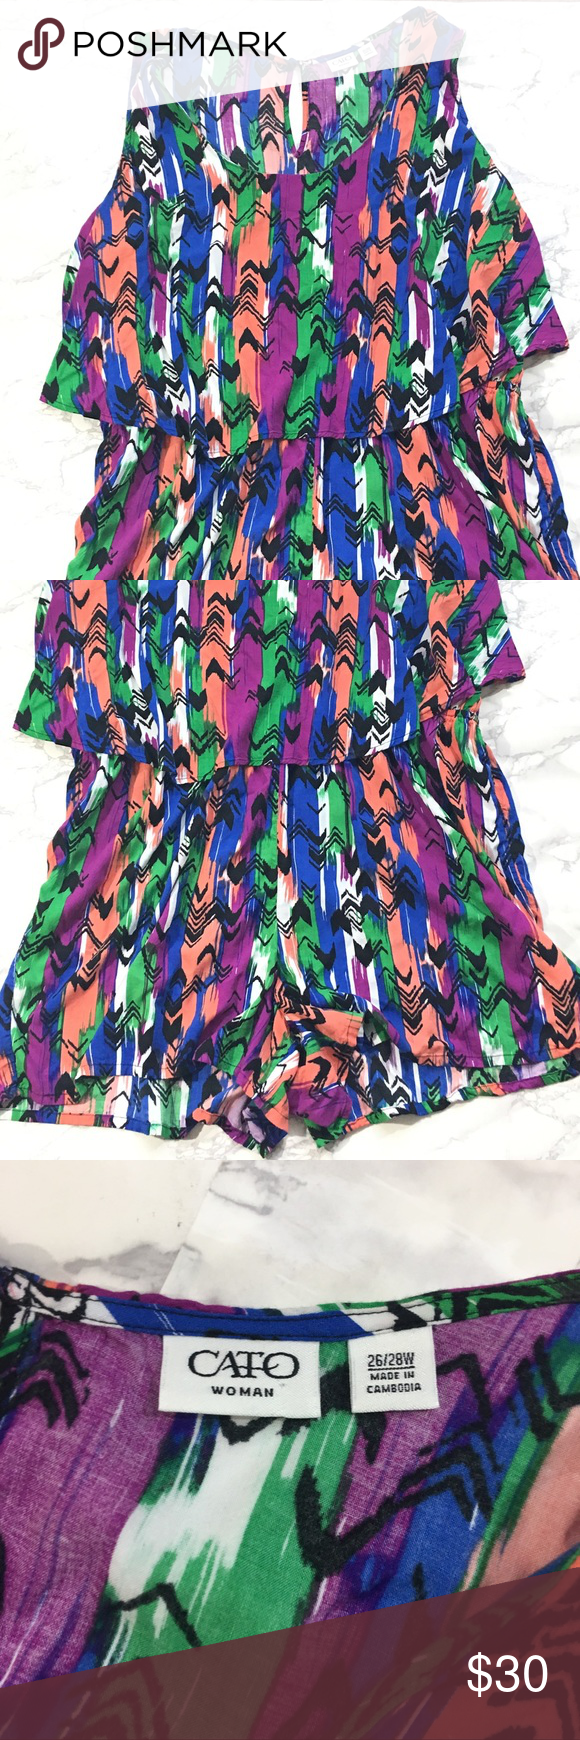 "Cato Plus size one piece shorts romper This one piece romper is in great condition. Perfect for summer. Cato womens plus size 26/28W.  Coral, Purple, Green, Blue, Black and White. Sleeveless.   Measurements taken while laying flat:  16.5"" Shoulder to shoulder 28"" Chest 36"" Length 19.5"" Waist 28"" Hips 4"" Inseam Cato Shorts"